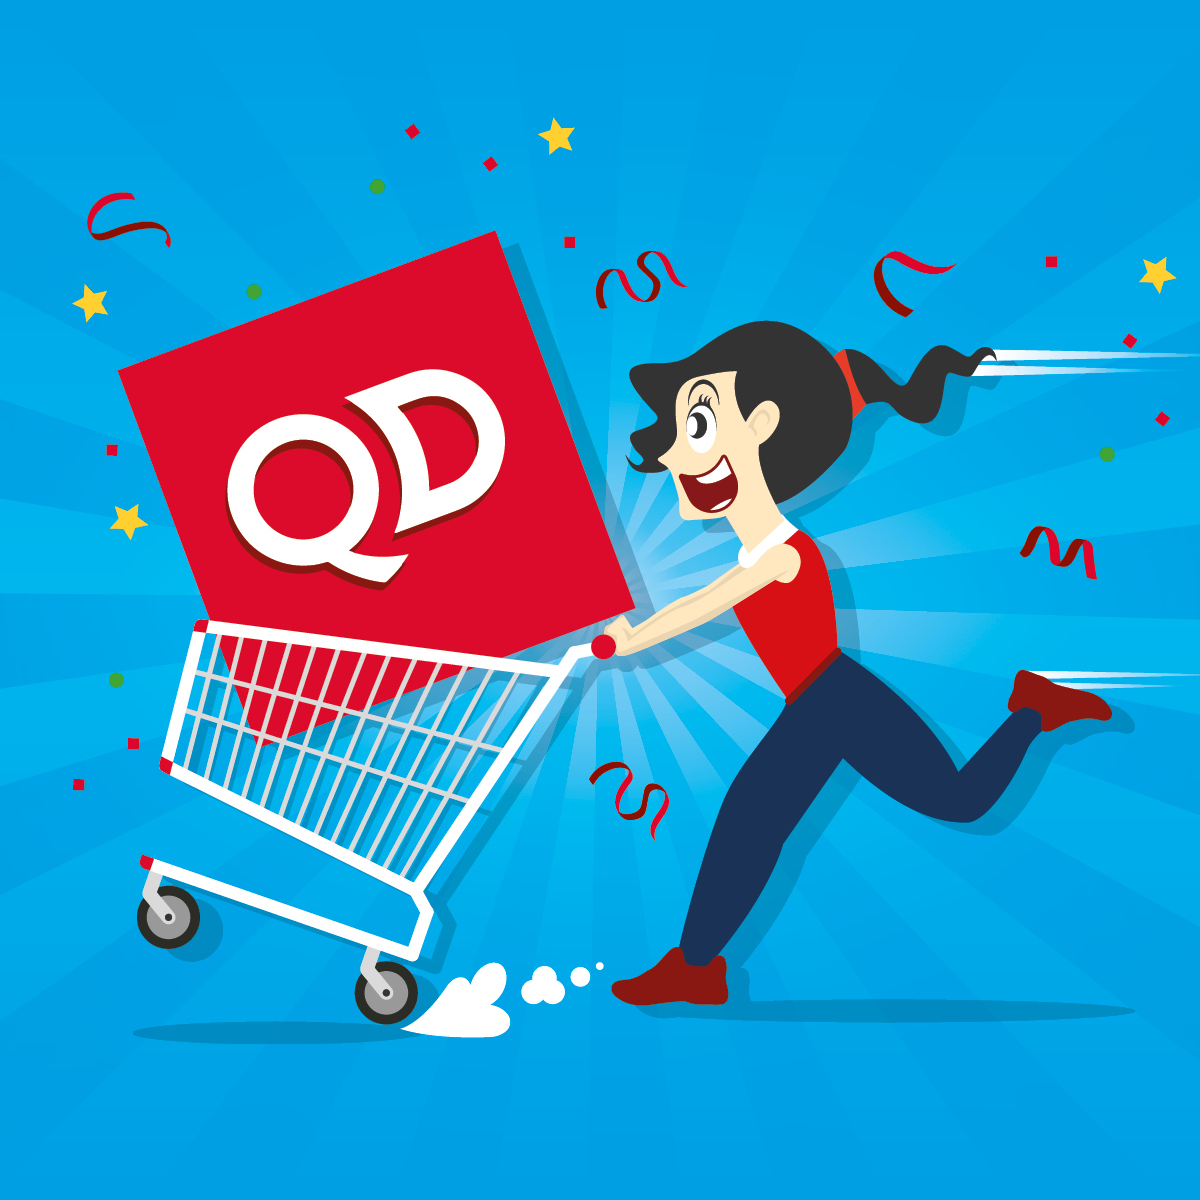 QD Stores Christmas Trolley Dash